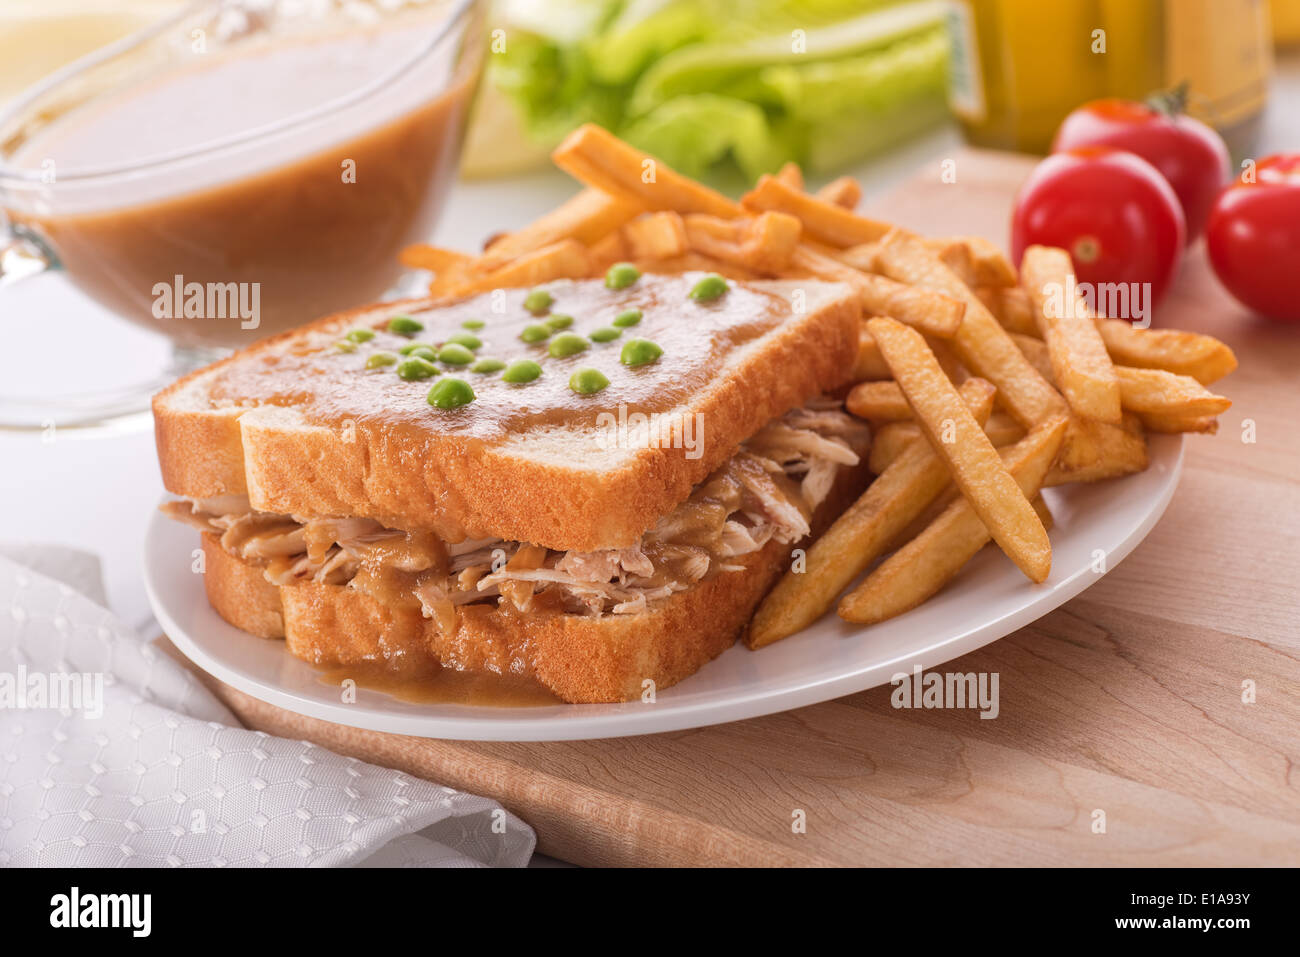 A delicious hot turkey sandwich with gravy, green peas, and french fries. - Stock Image